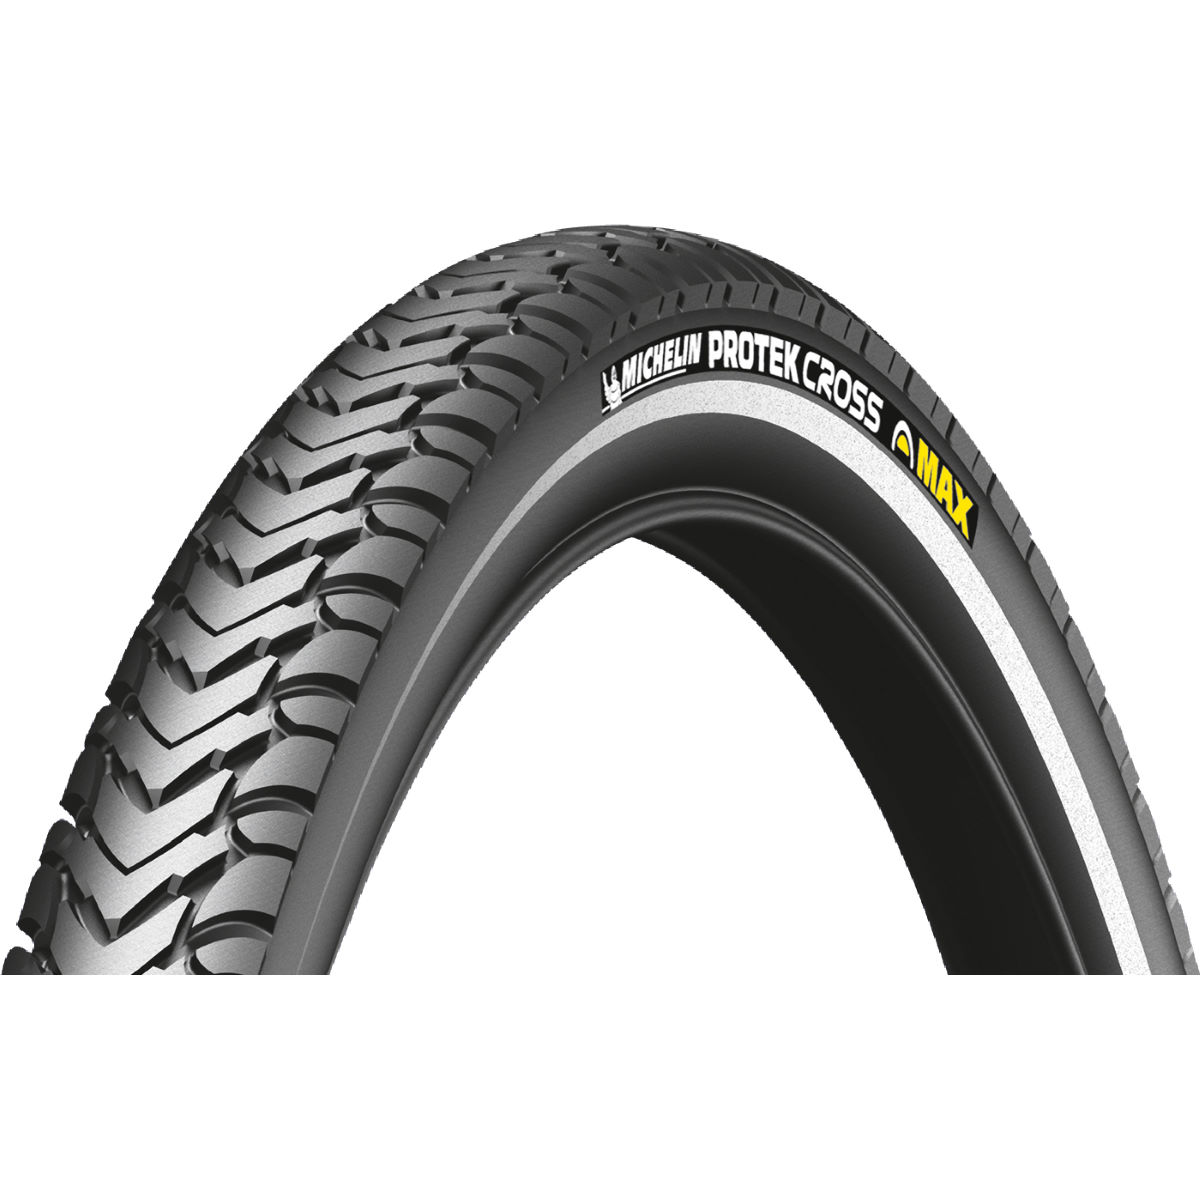 Pneu cyclotourisme Michelin ProTek Cross Max - 700 x 32c Reflective